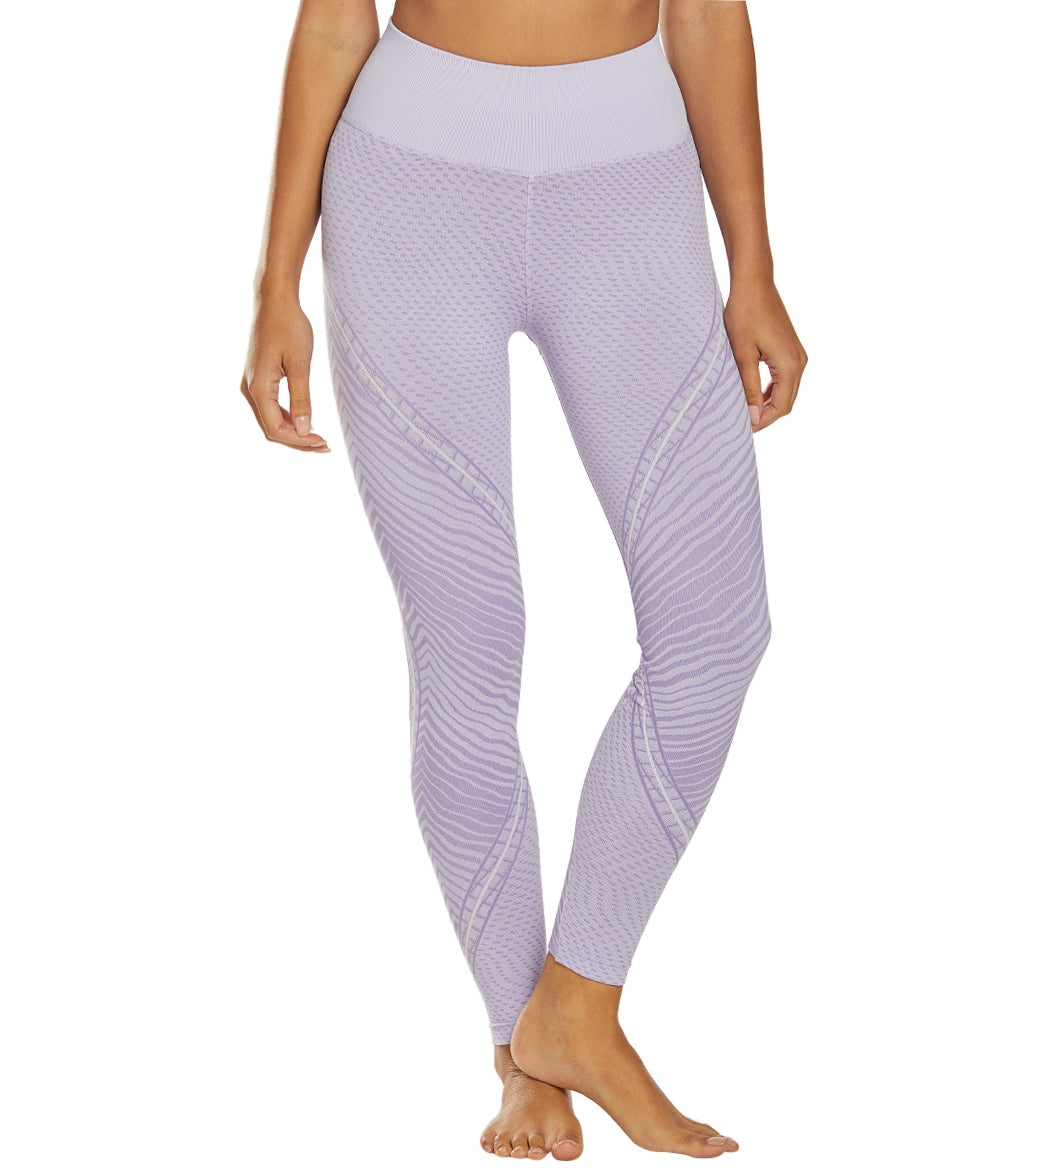 NUX Wildcat Seamless High Waisted Yoga Leggings - Daybreak Spandex